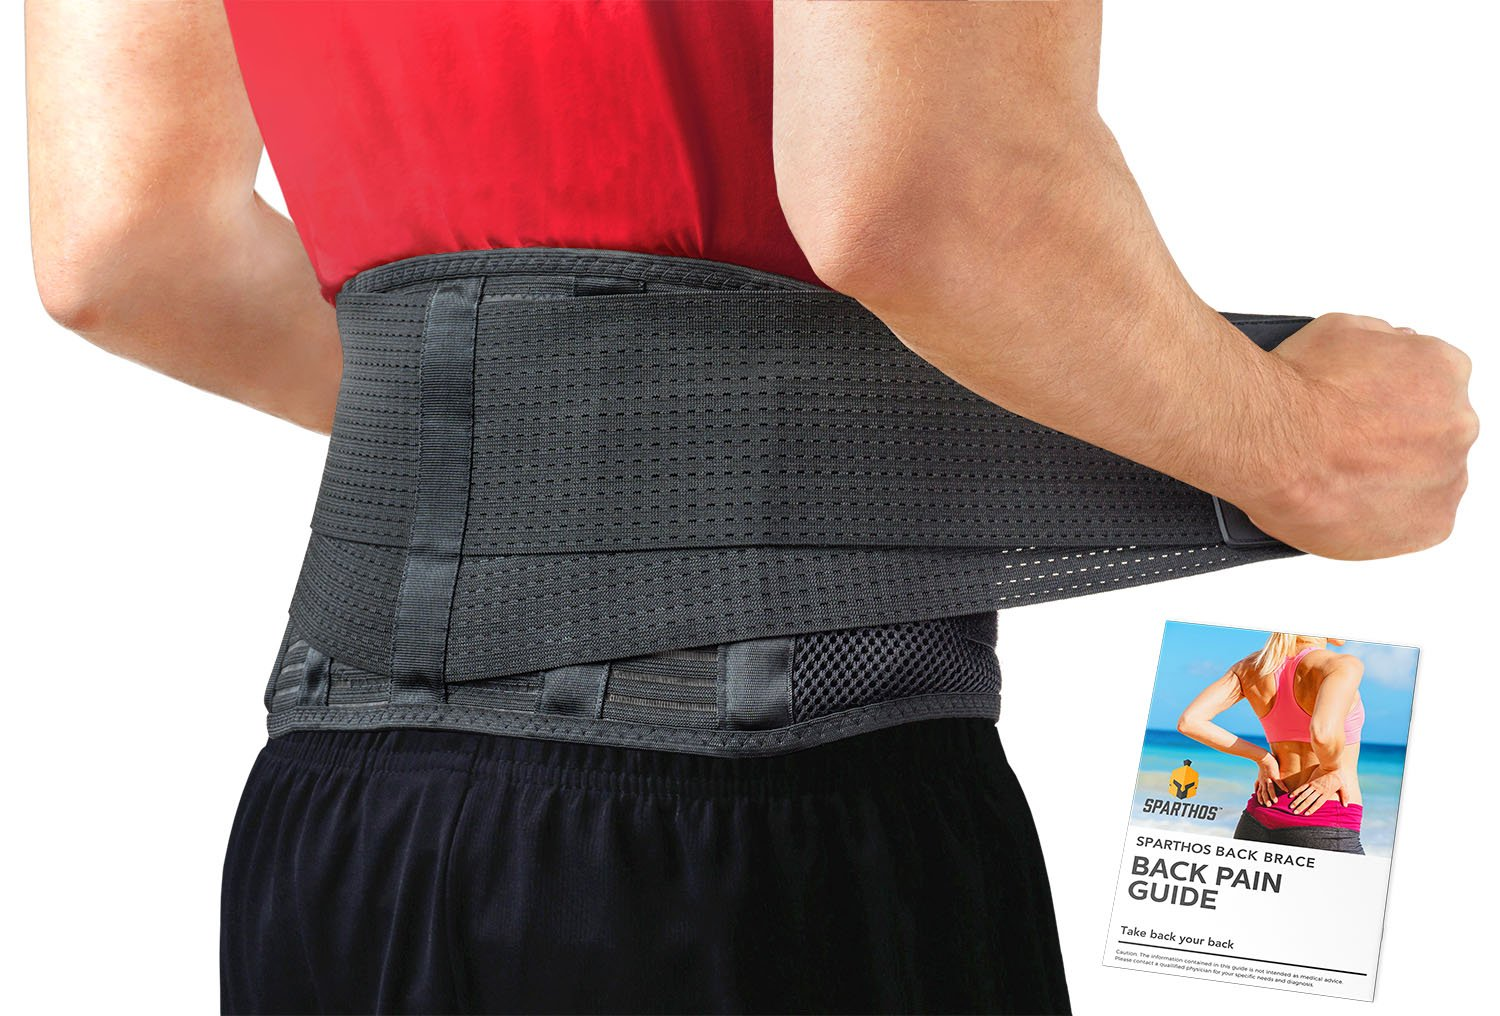 Back Support Belt by Sparthos - Relief for Back Pain, Herniated Disc, Sciatica, Scoliosis and more! - Breathable Mesh Design with Lumbar Pad - Adjustable Support Straps - Lower Back Brace [Size Small] by Sparthos